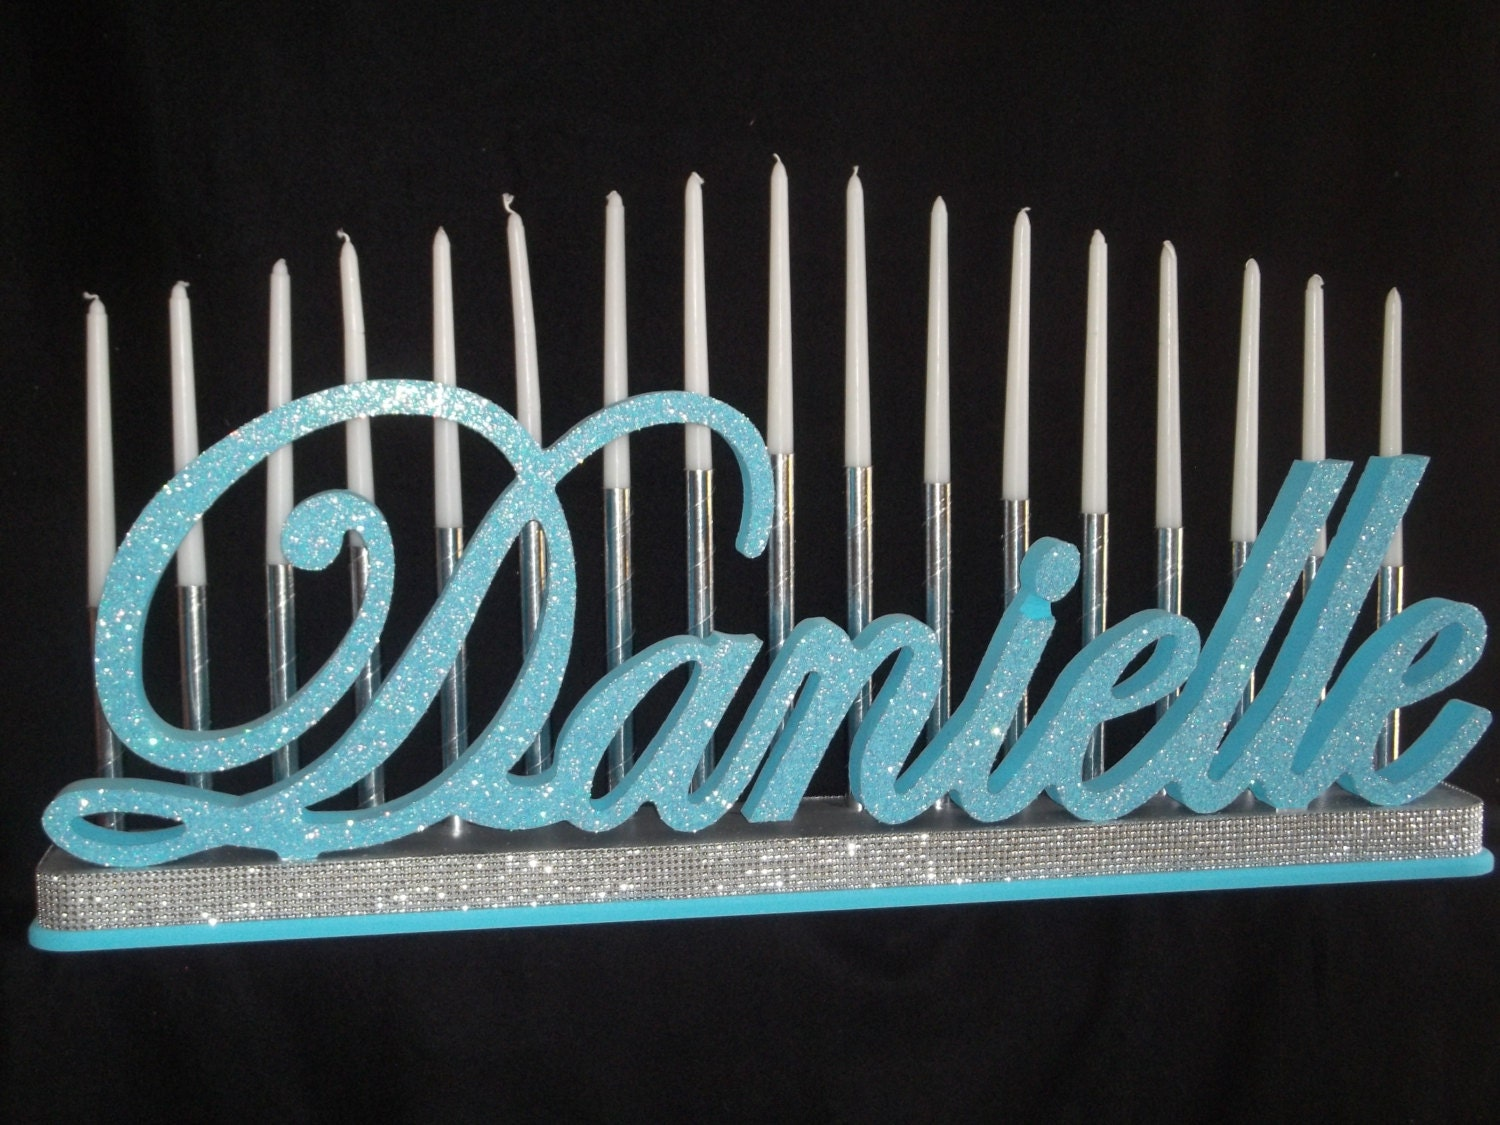 Tiered Candle Holder Embellishment For Sweet 16 Bat Mitzvah